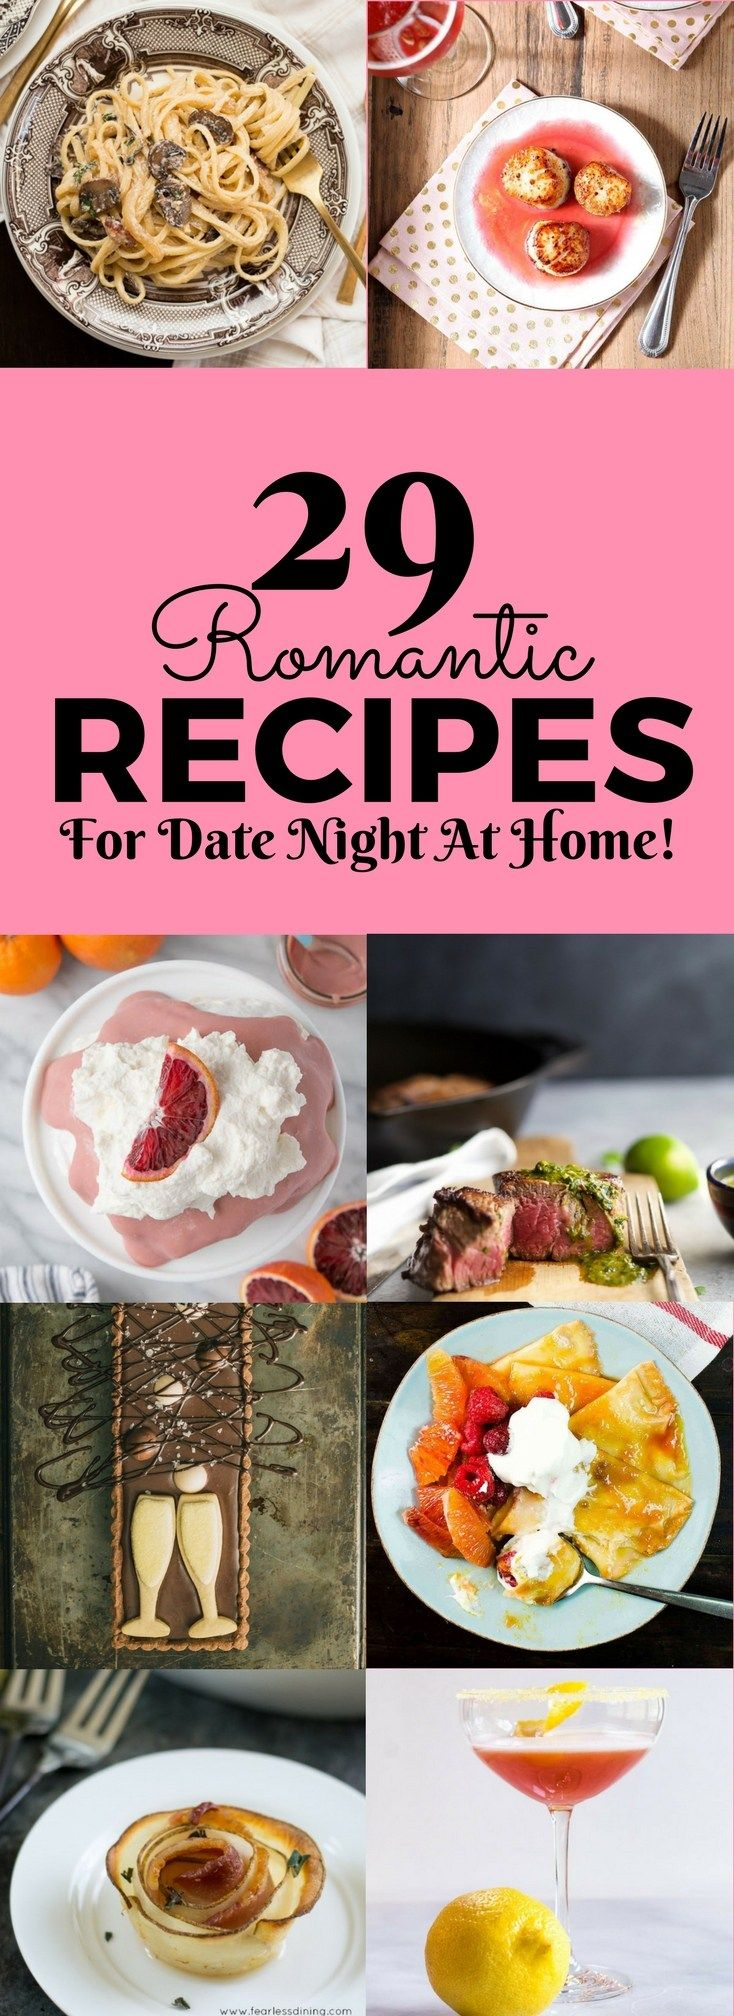 29 romantic recipes for date night at home romantic recipes and food 29 romantic recipes for date night at home fox and briar home recipessoul food forumfinder Images